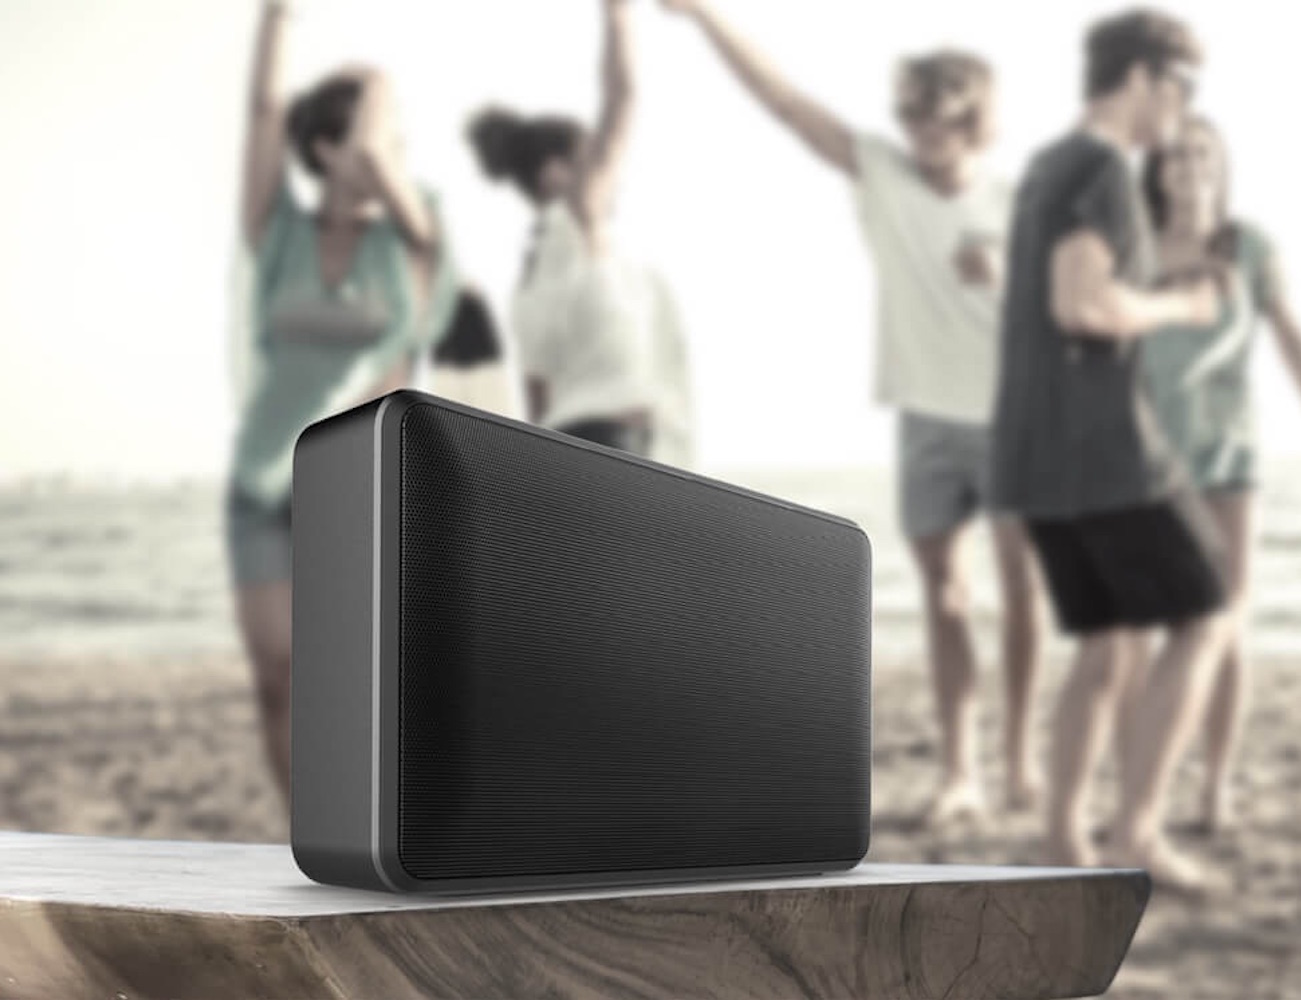 Aud+Air+Wireless+Portable+Stereo+Speaker